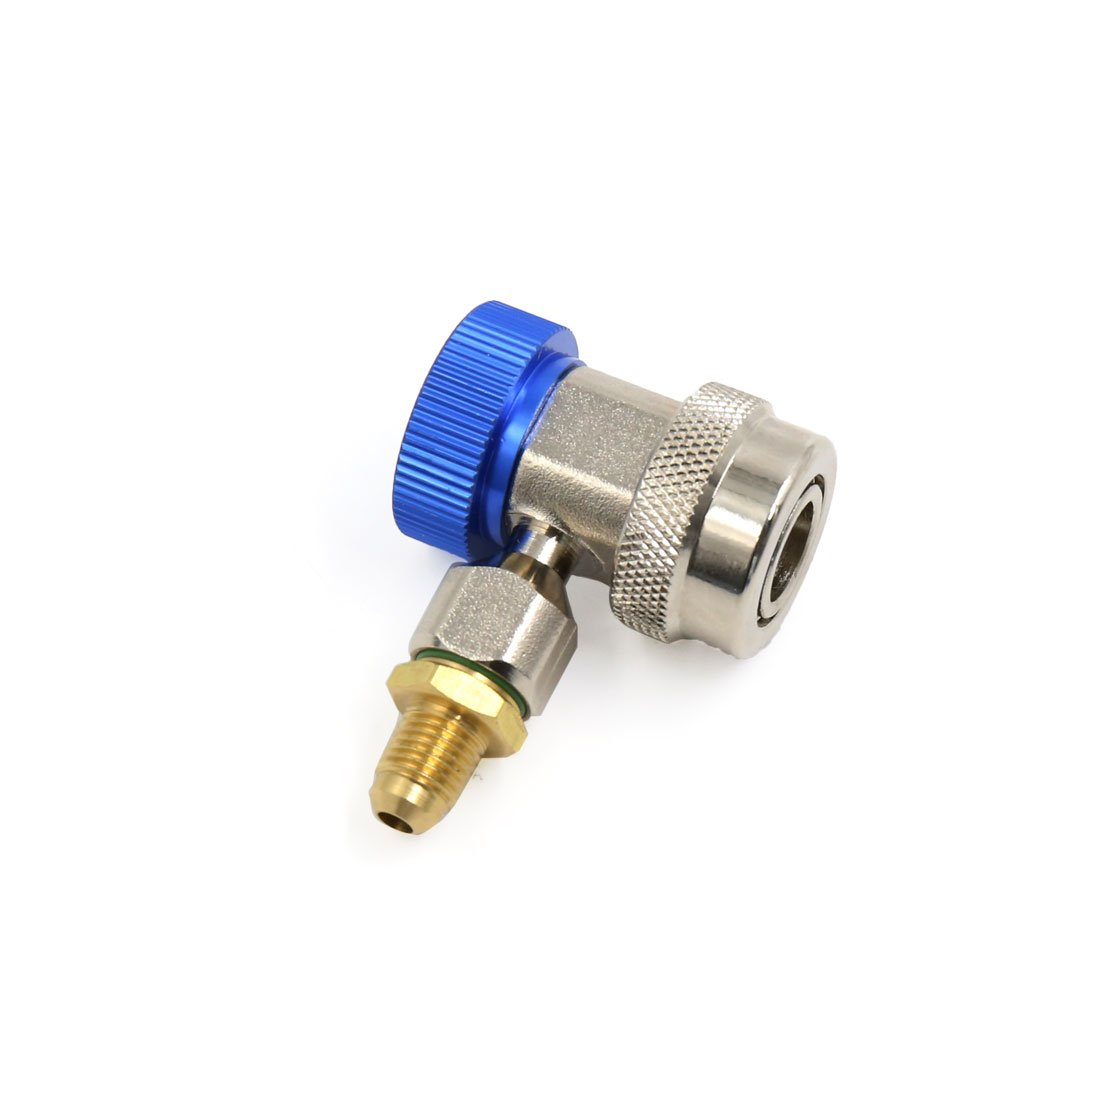 uxcell Blue Low Side Adjustable Air Conditioner Quick Coupler Connector Adapter for Car by uxcell (Image #2)